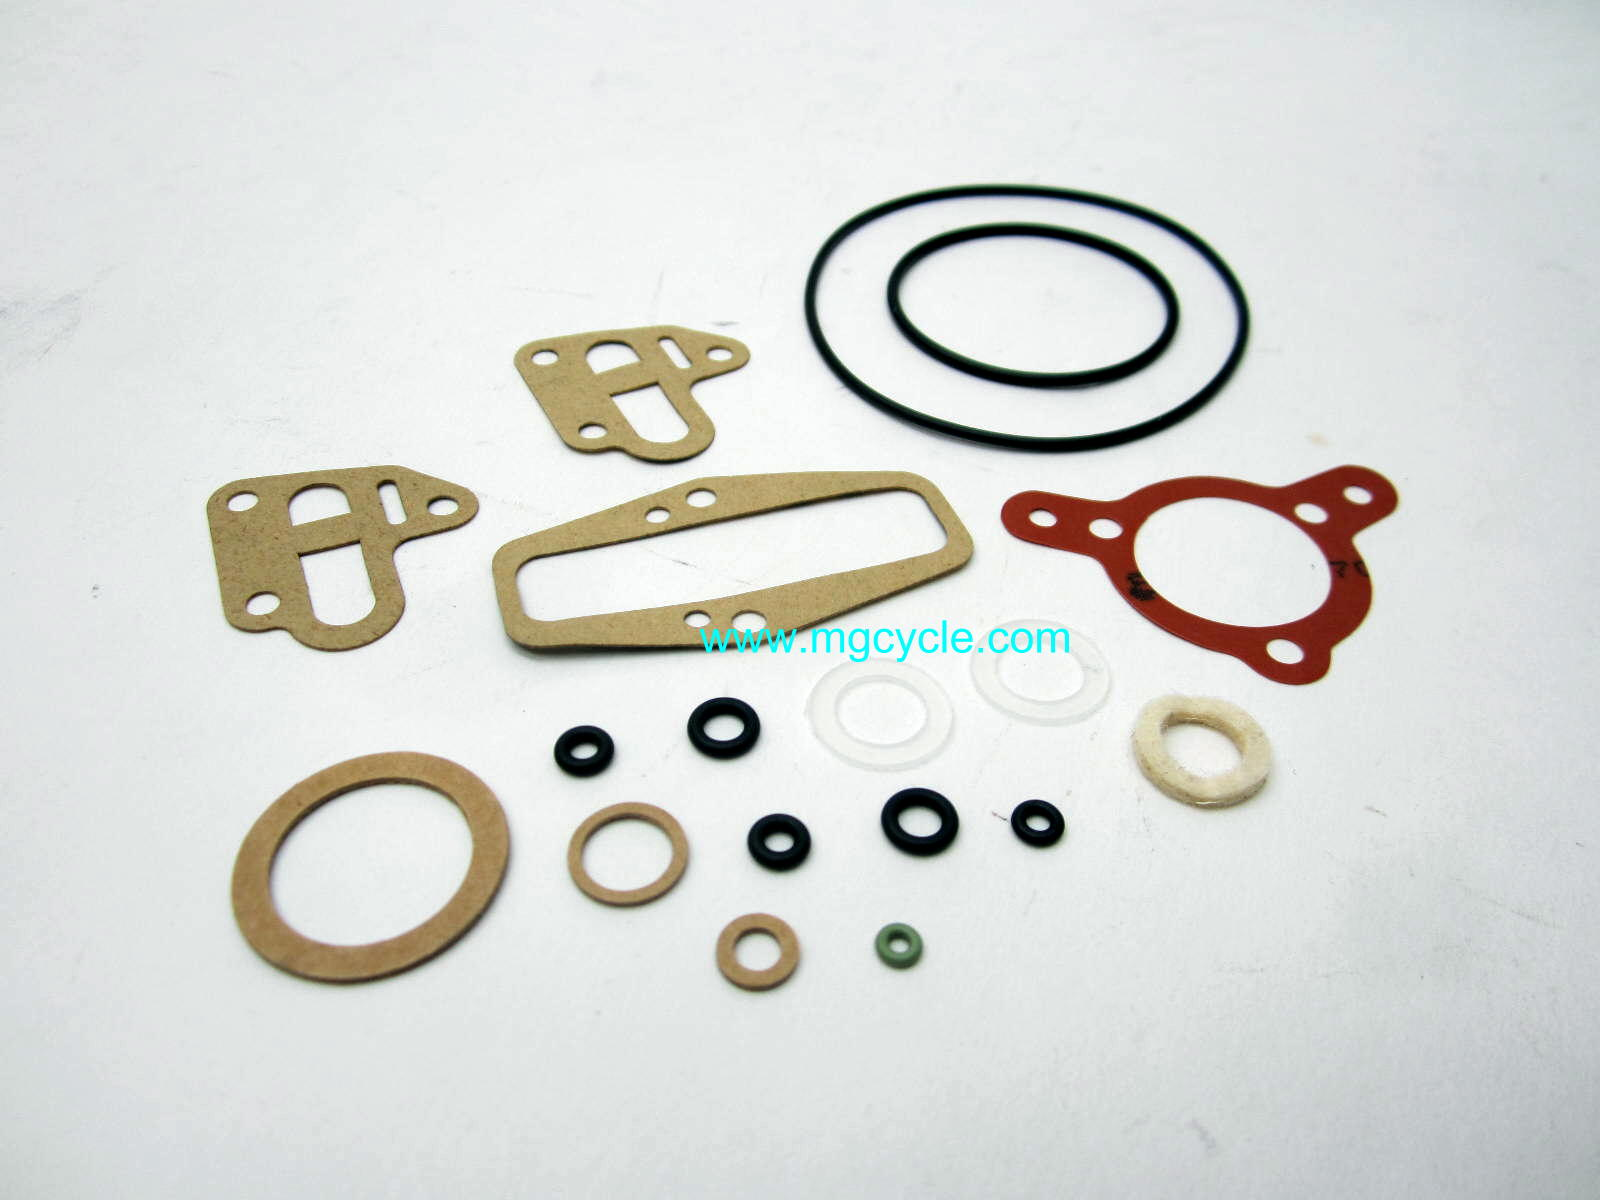 Carb kit for Dellorto PHM 38/40/41 A-B-N Guzzi LM 4/5 1000S Cal3